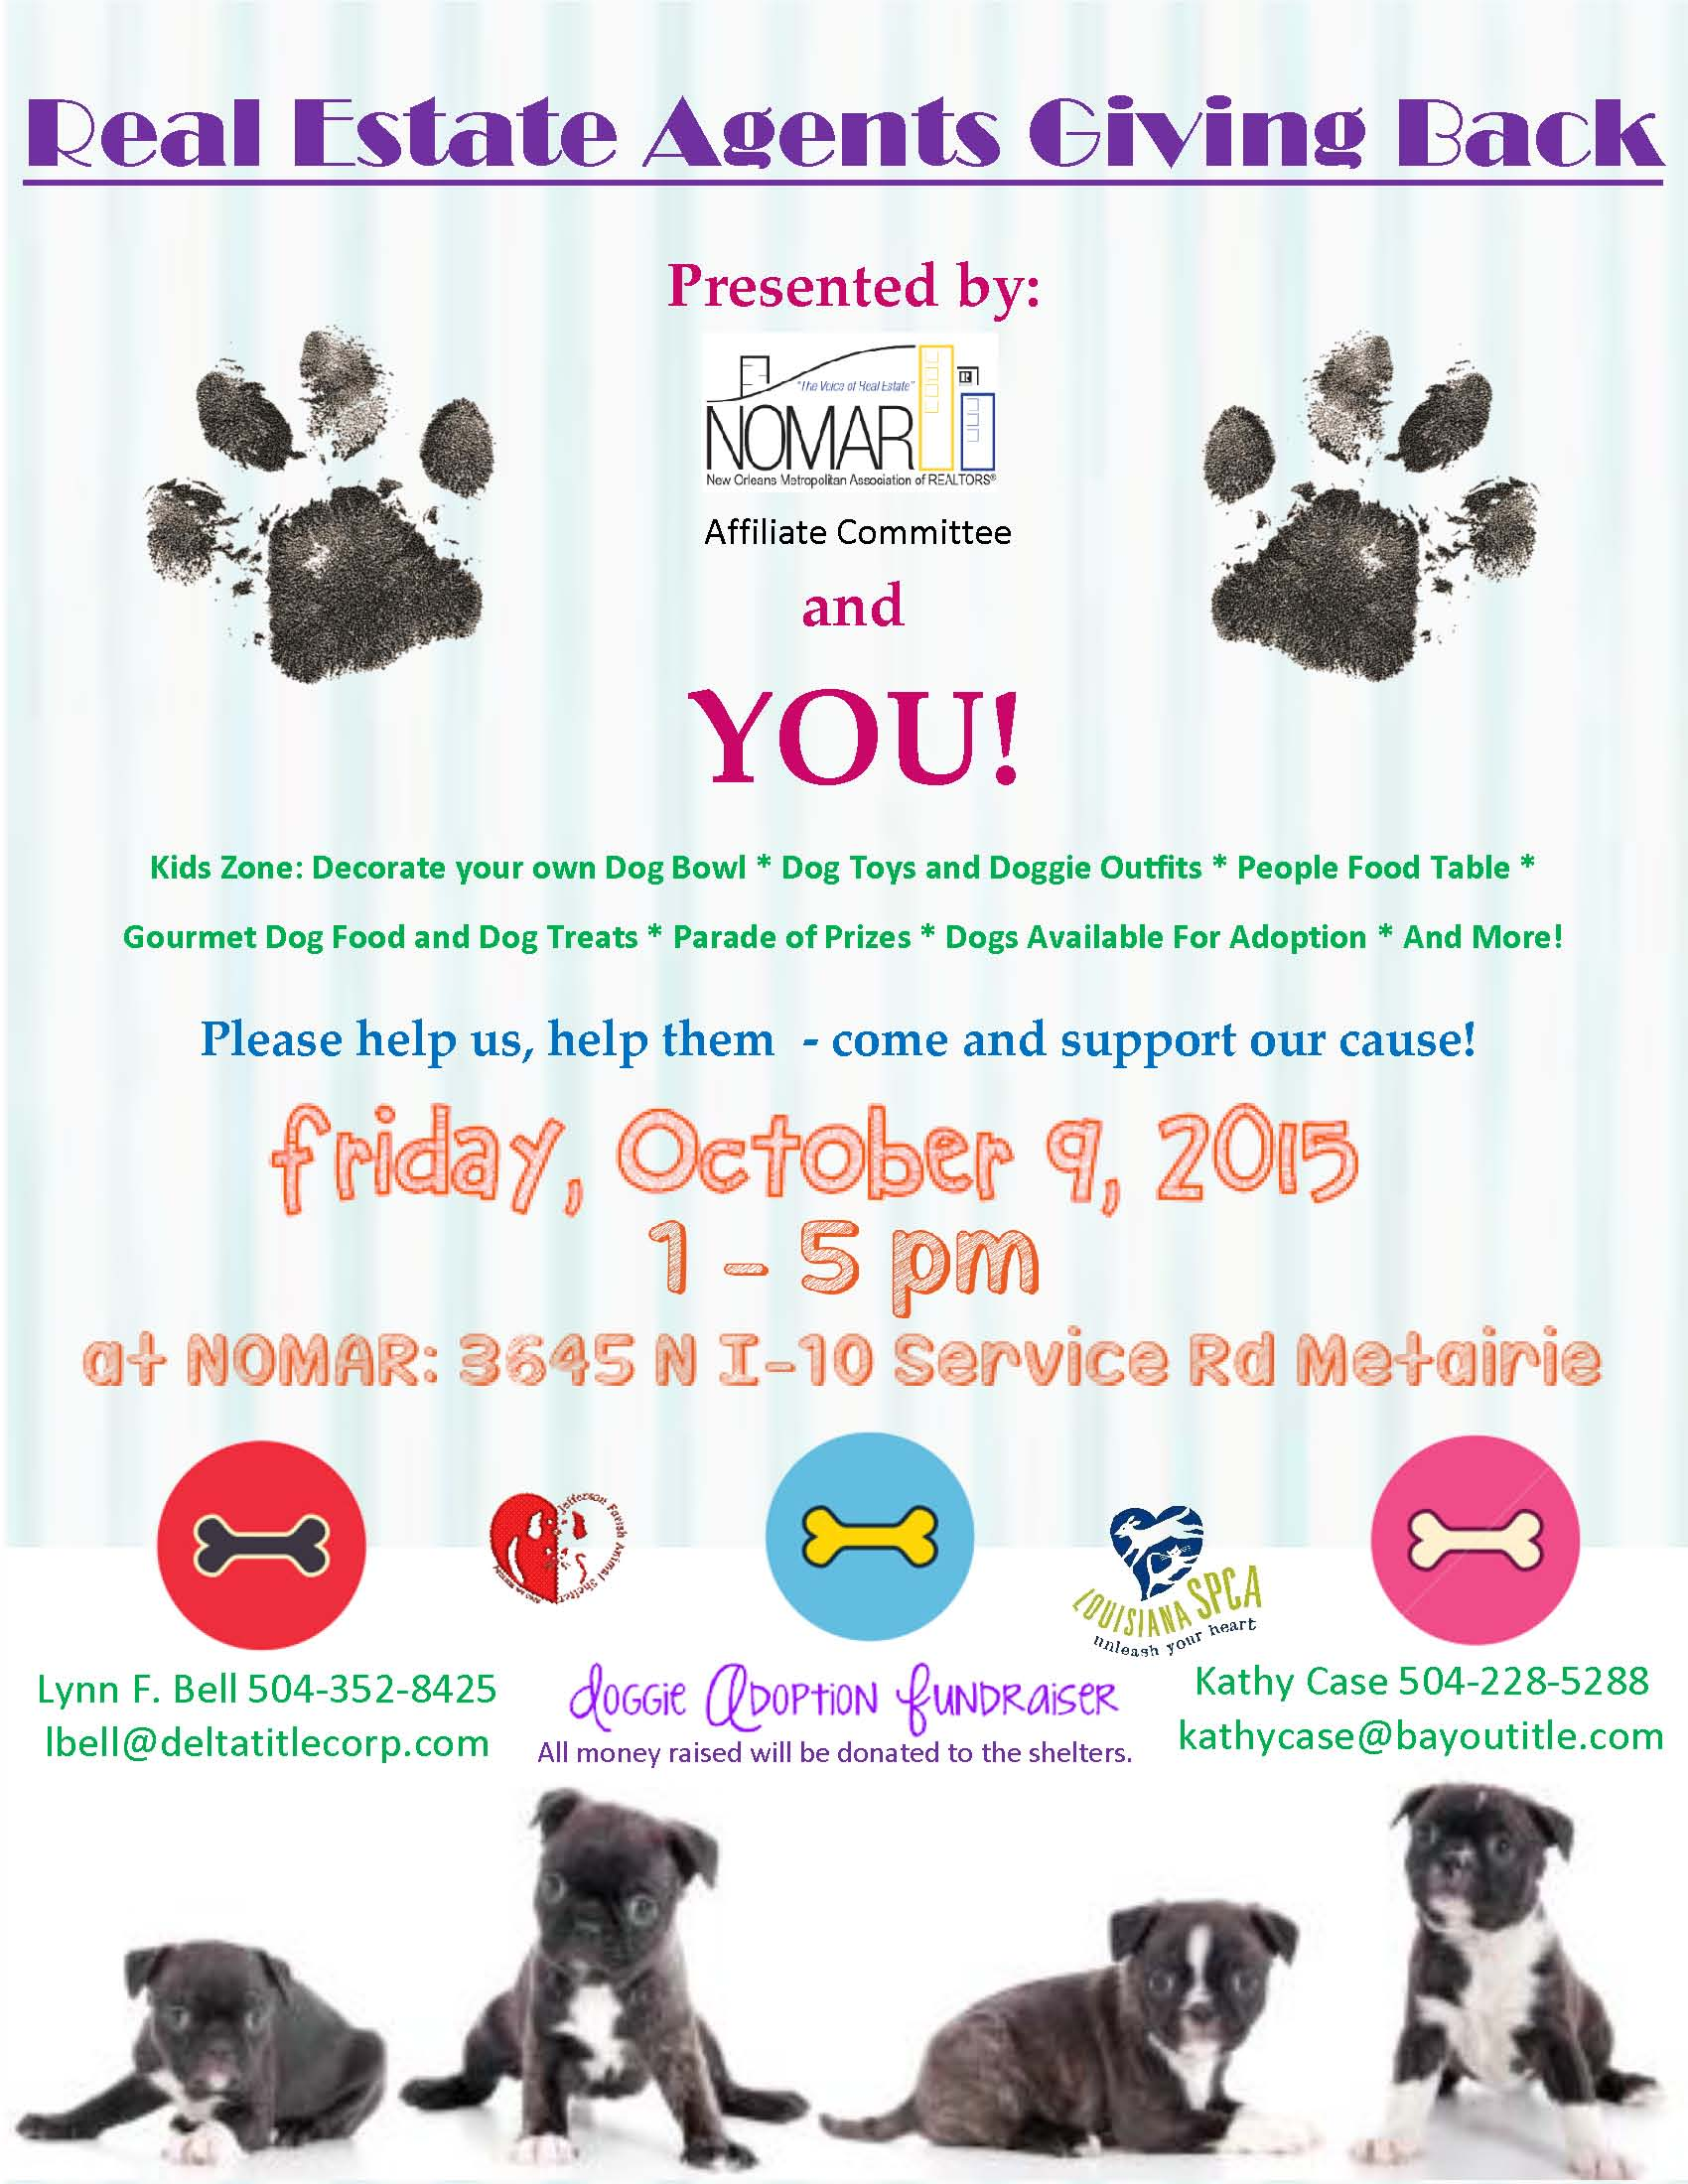 NOMAR Pet Adoption Agent and Client flier